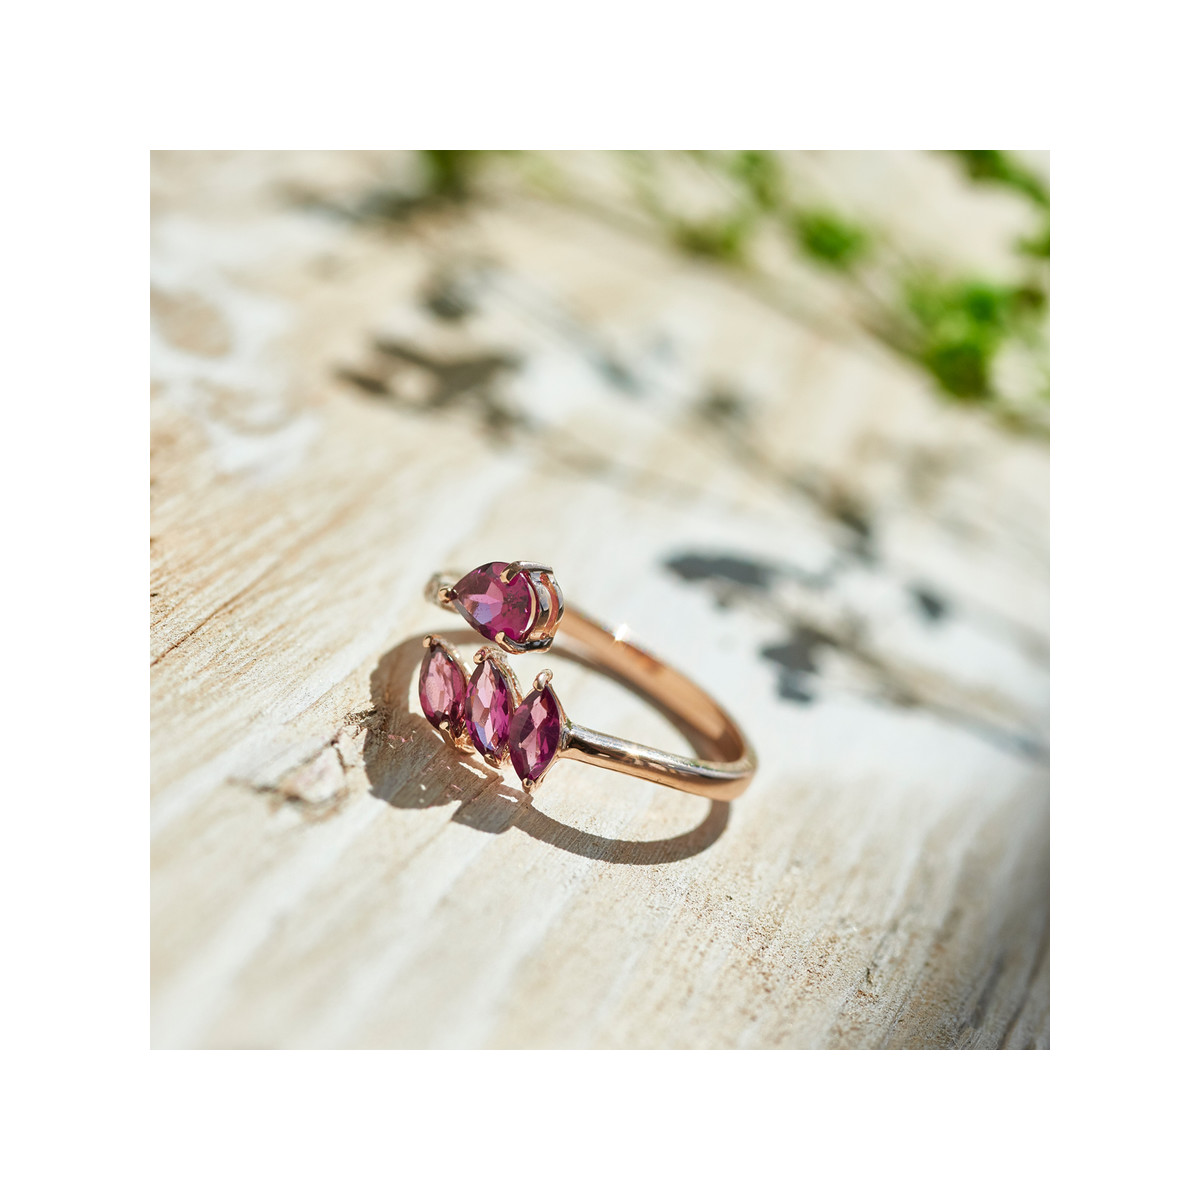 Bague or 375 rose grenat rhodolite saphir diamant - vue VD2